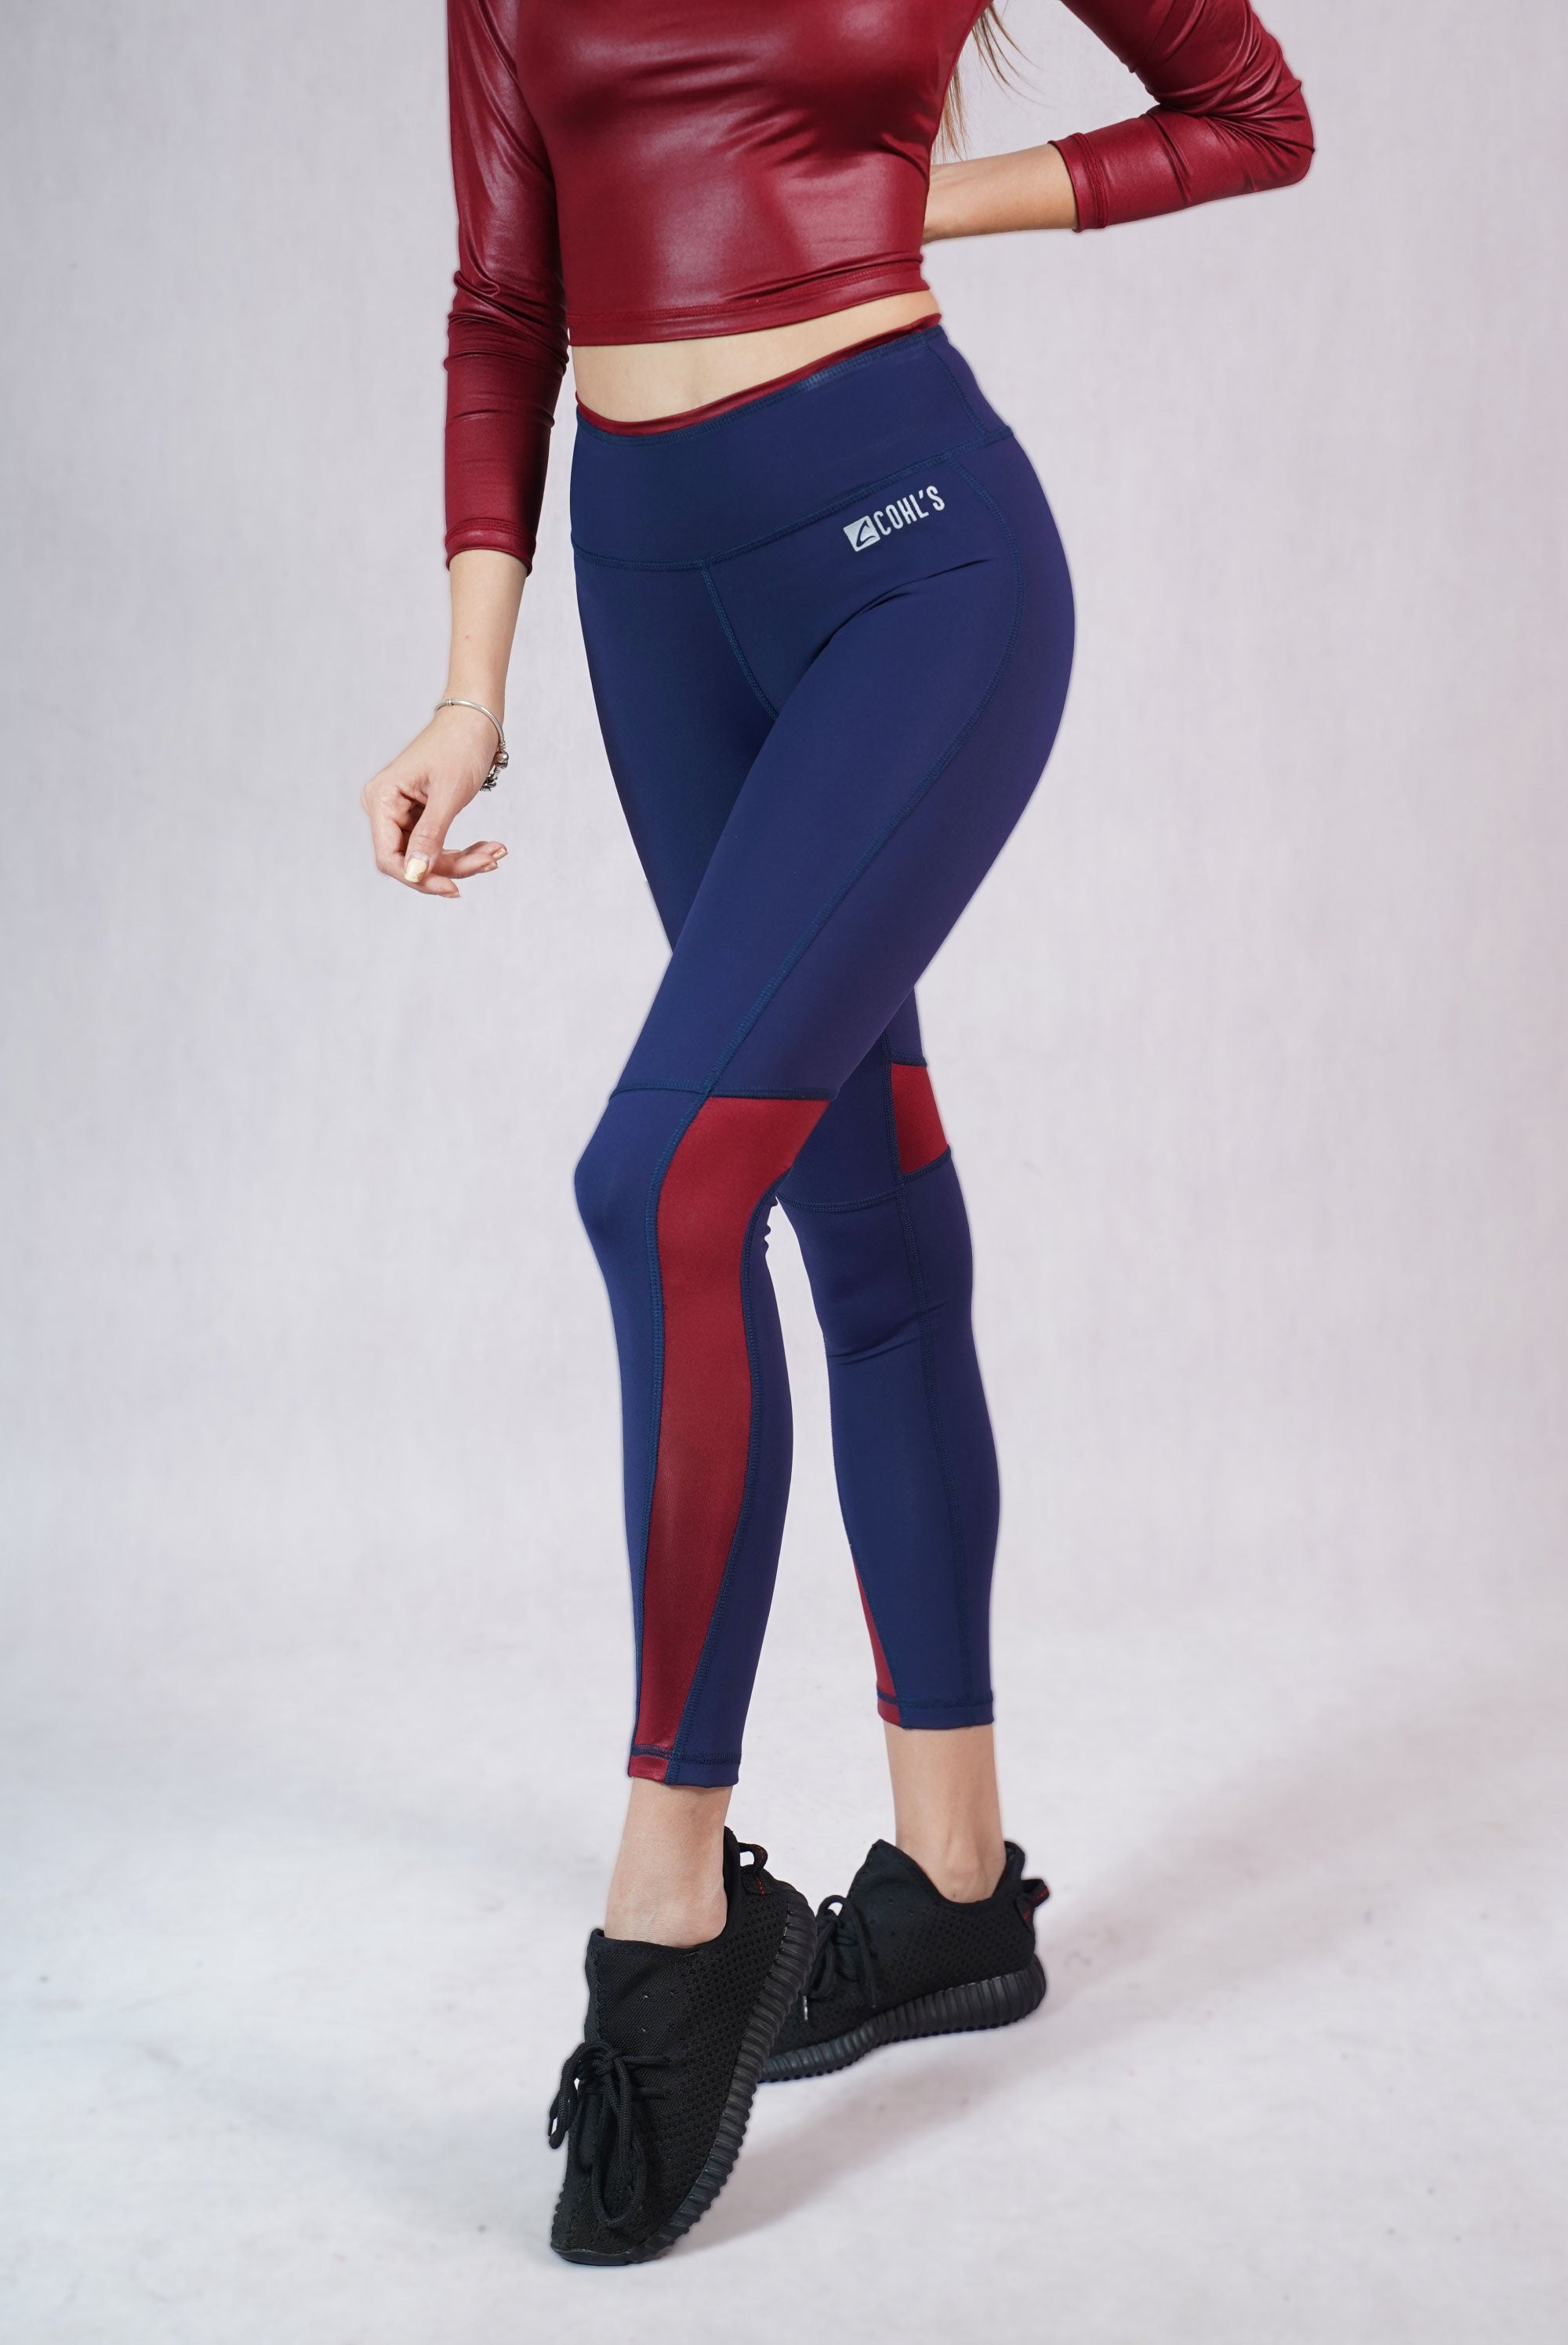 Glossy Detail Leggings Blue/Bordeaux - C112008